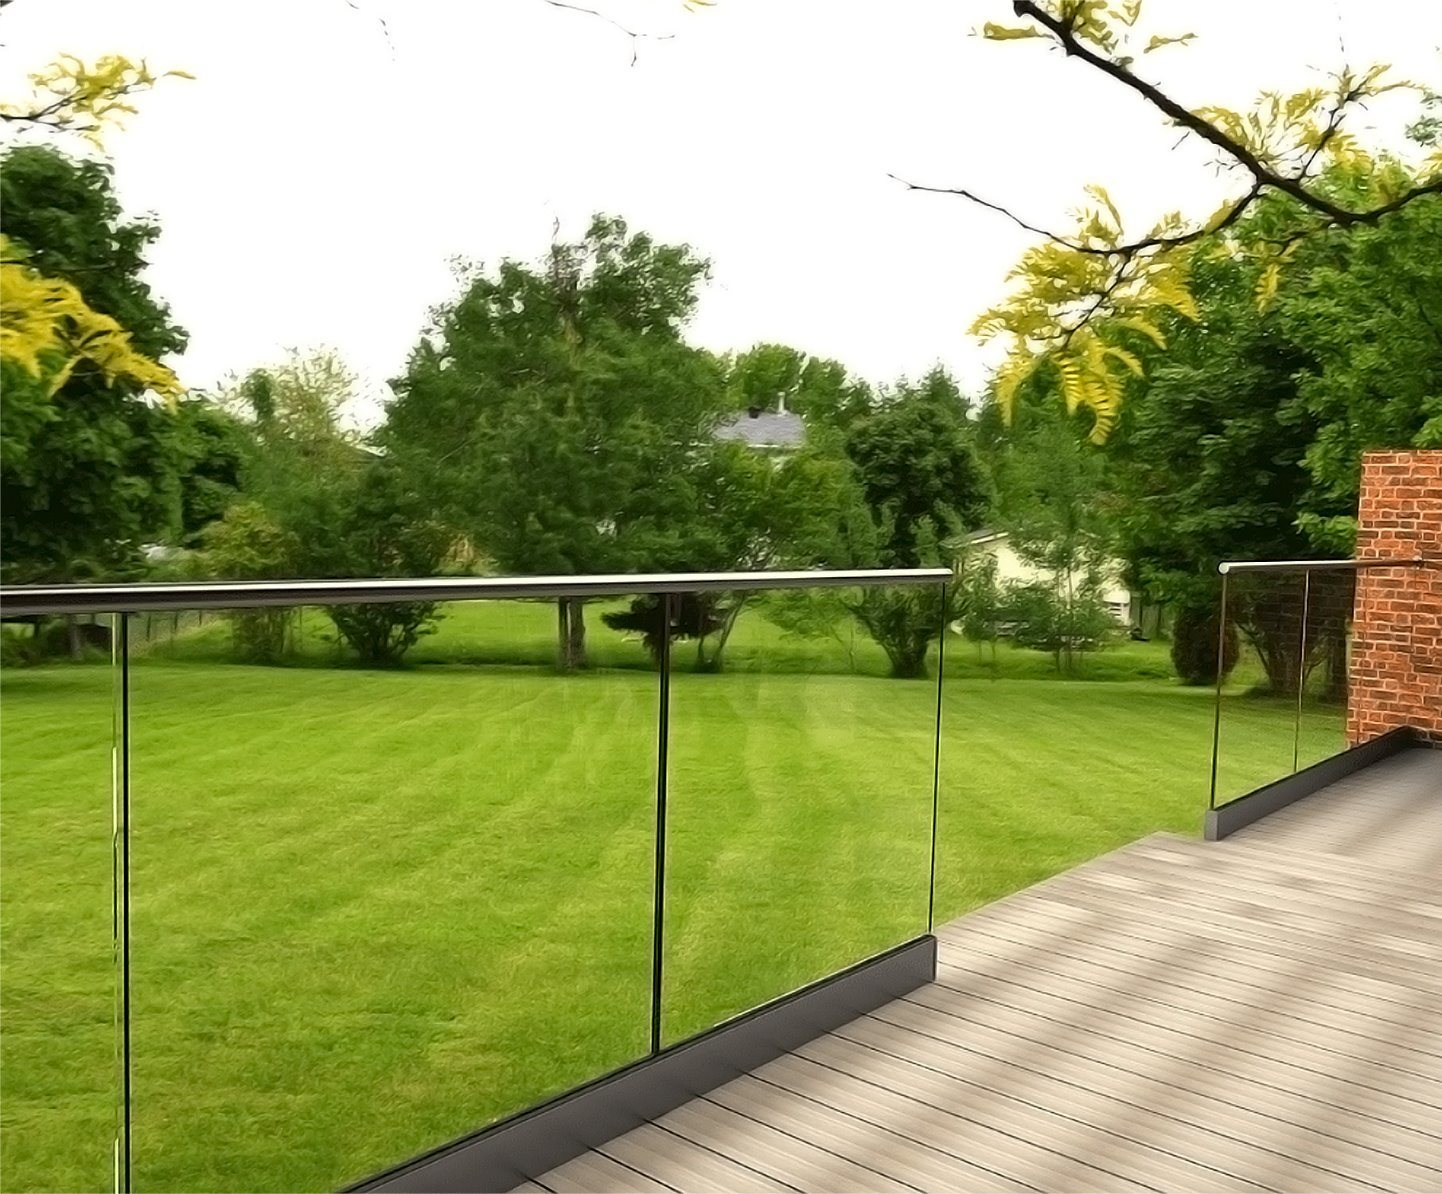 hot item floor recessed decking glass railing handrail for patio garden fence